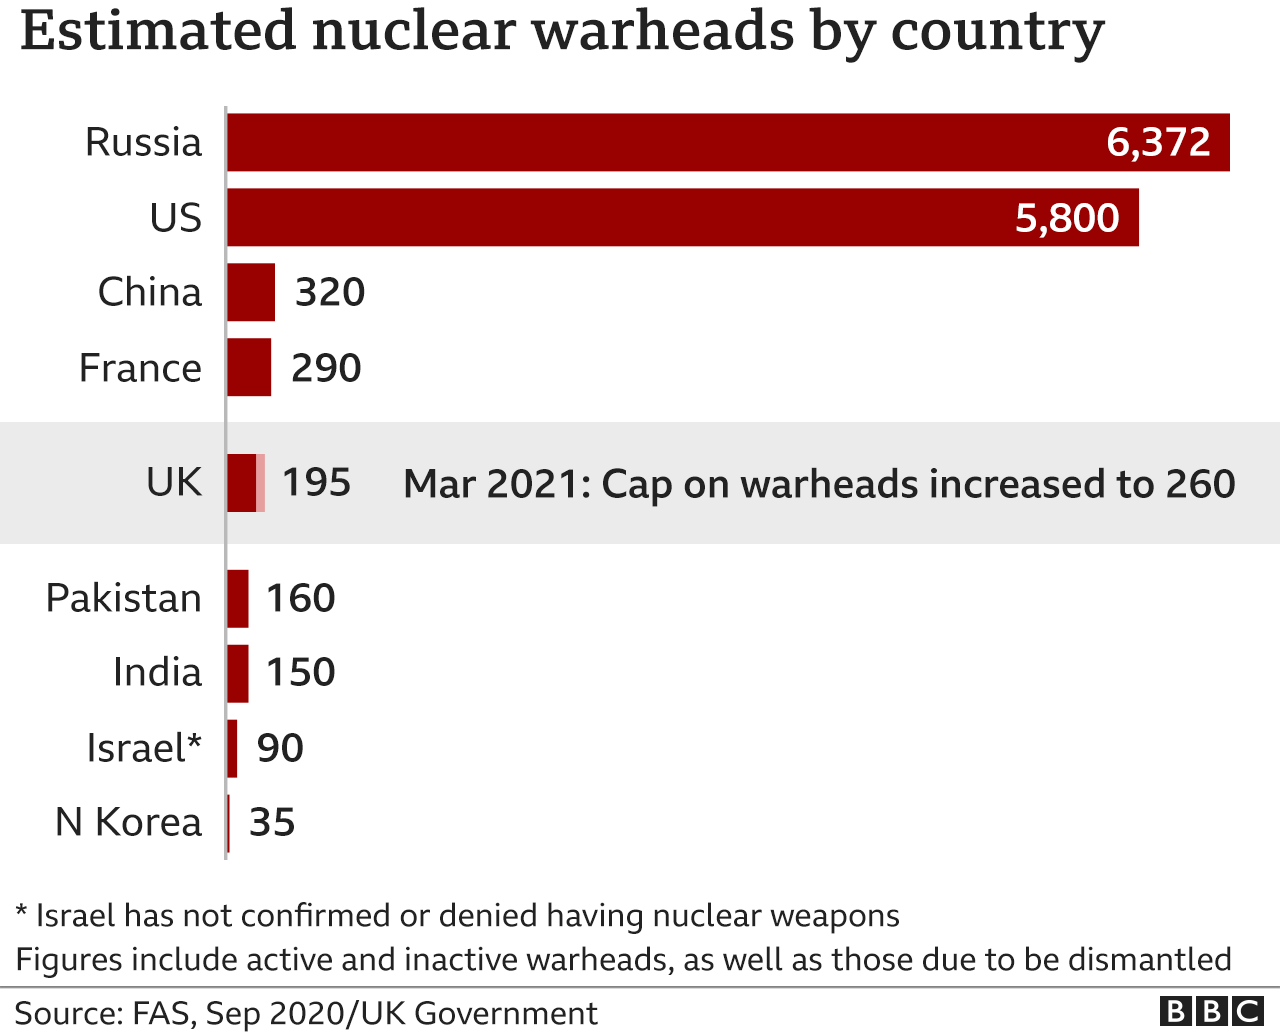 Chart showing estimated nuclear warheads by country